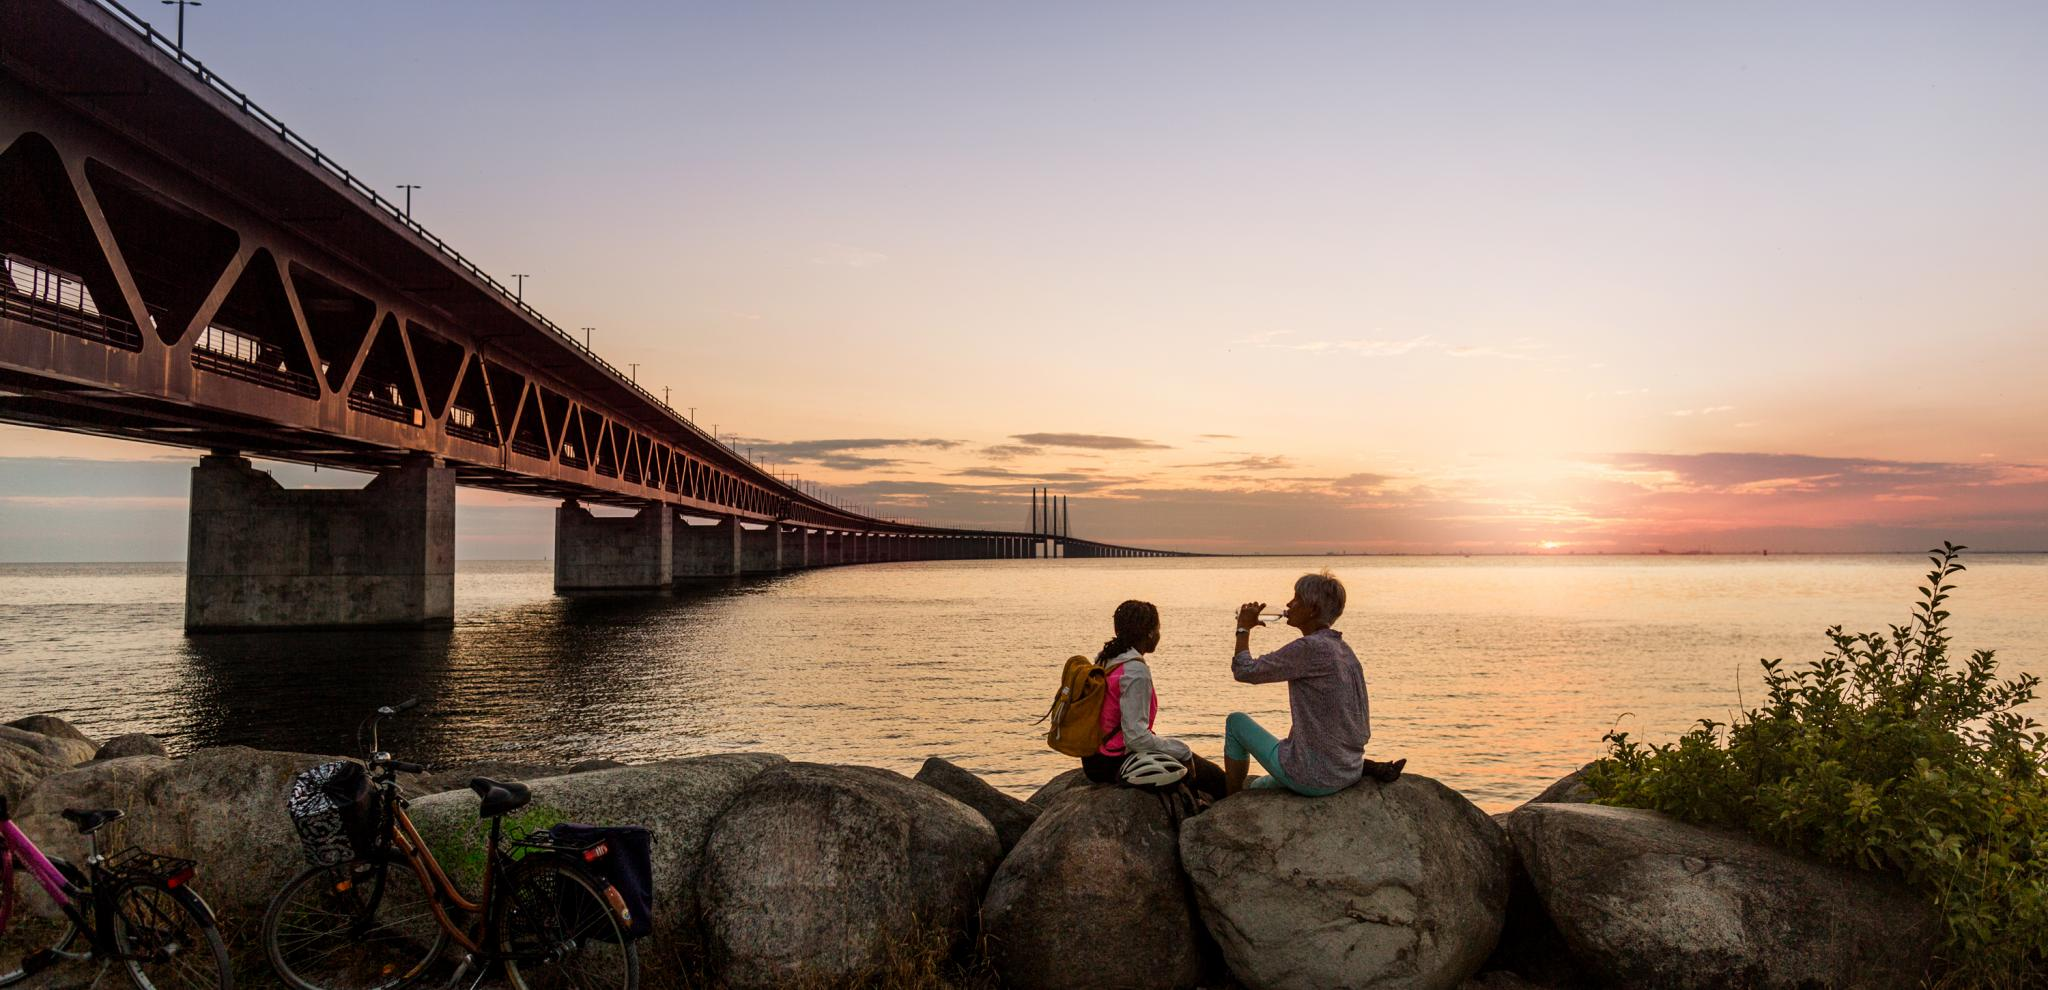 Two people taking a break at sunset next to bridge overlooking sea